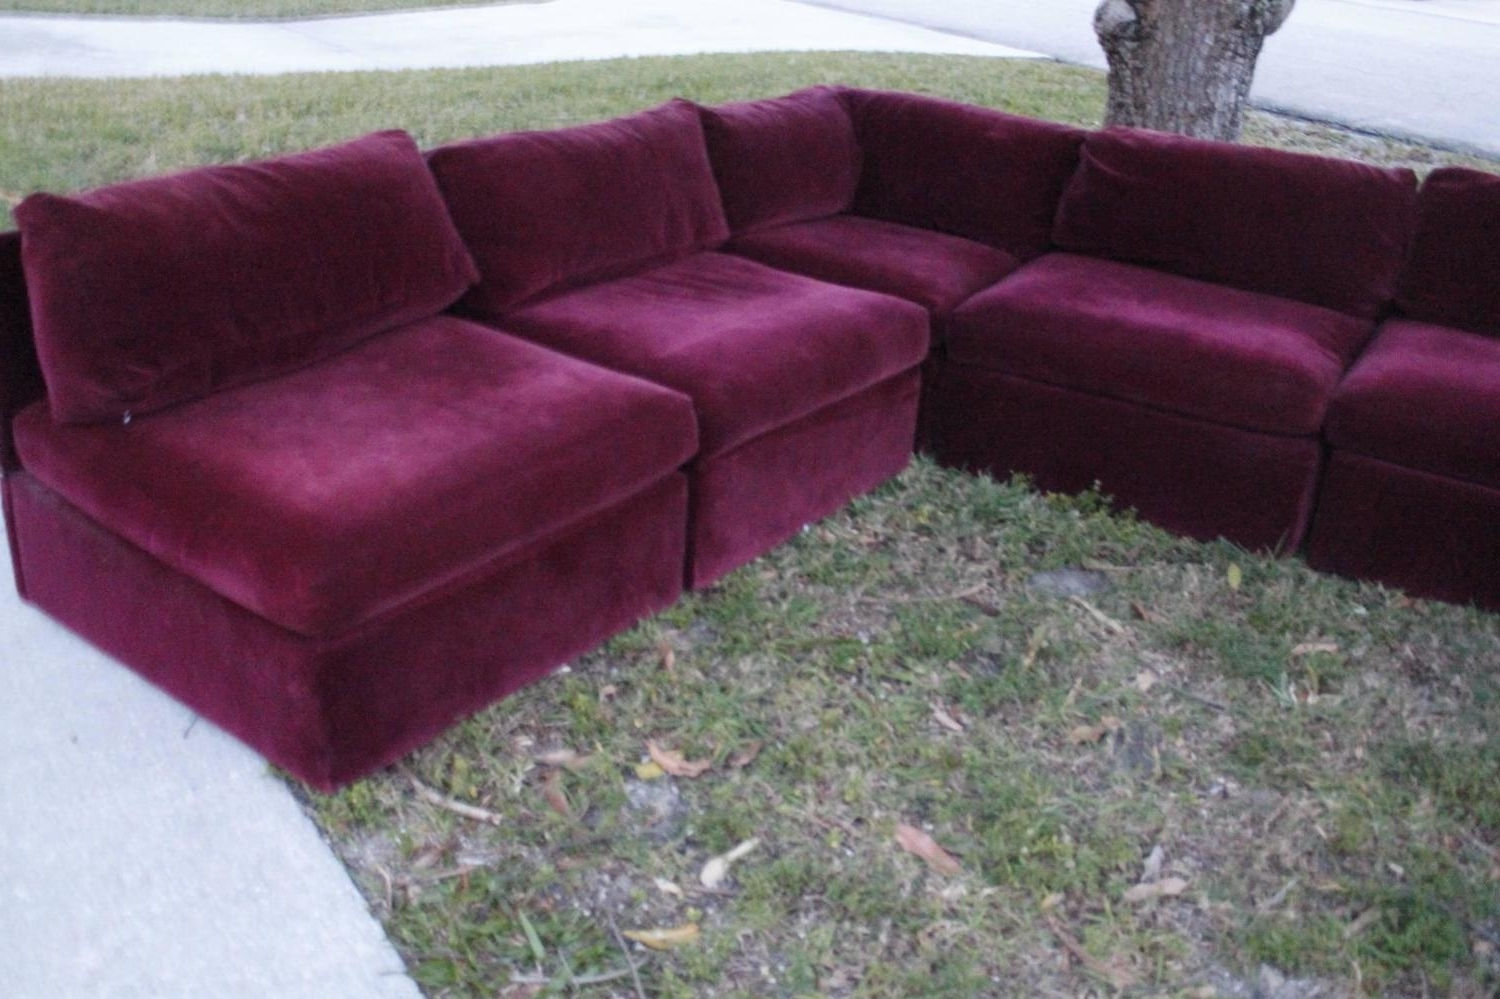 2019 Vintage Sectional Sofas With Milo Baughman For Thayer Coggin Tagged Nine Piece Sectional Sofa (View 3 of 20)